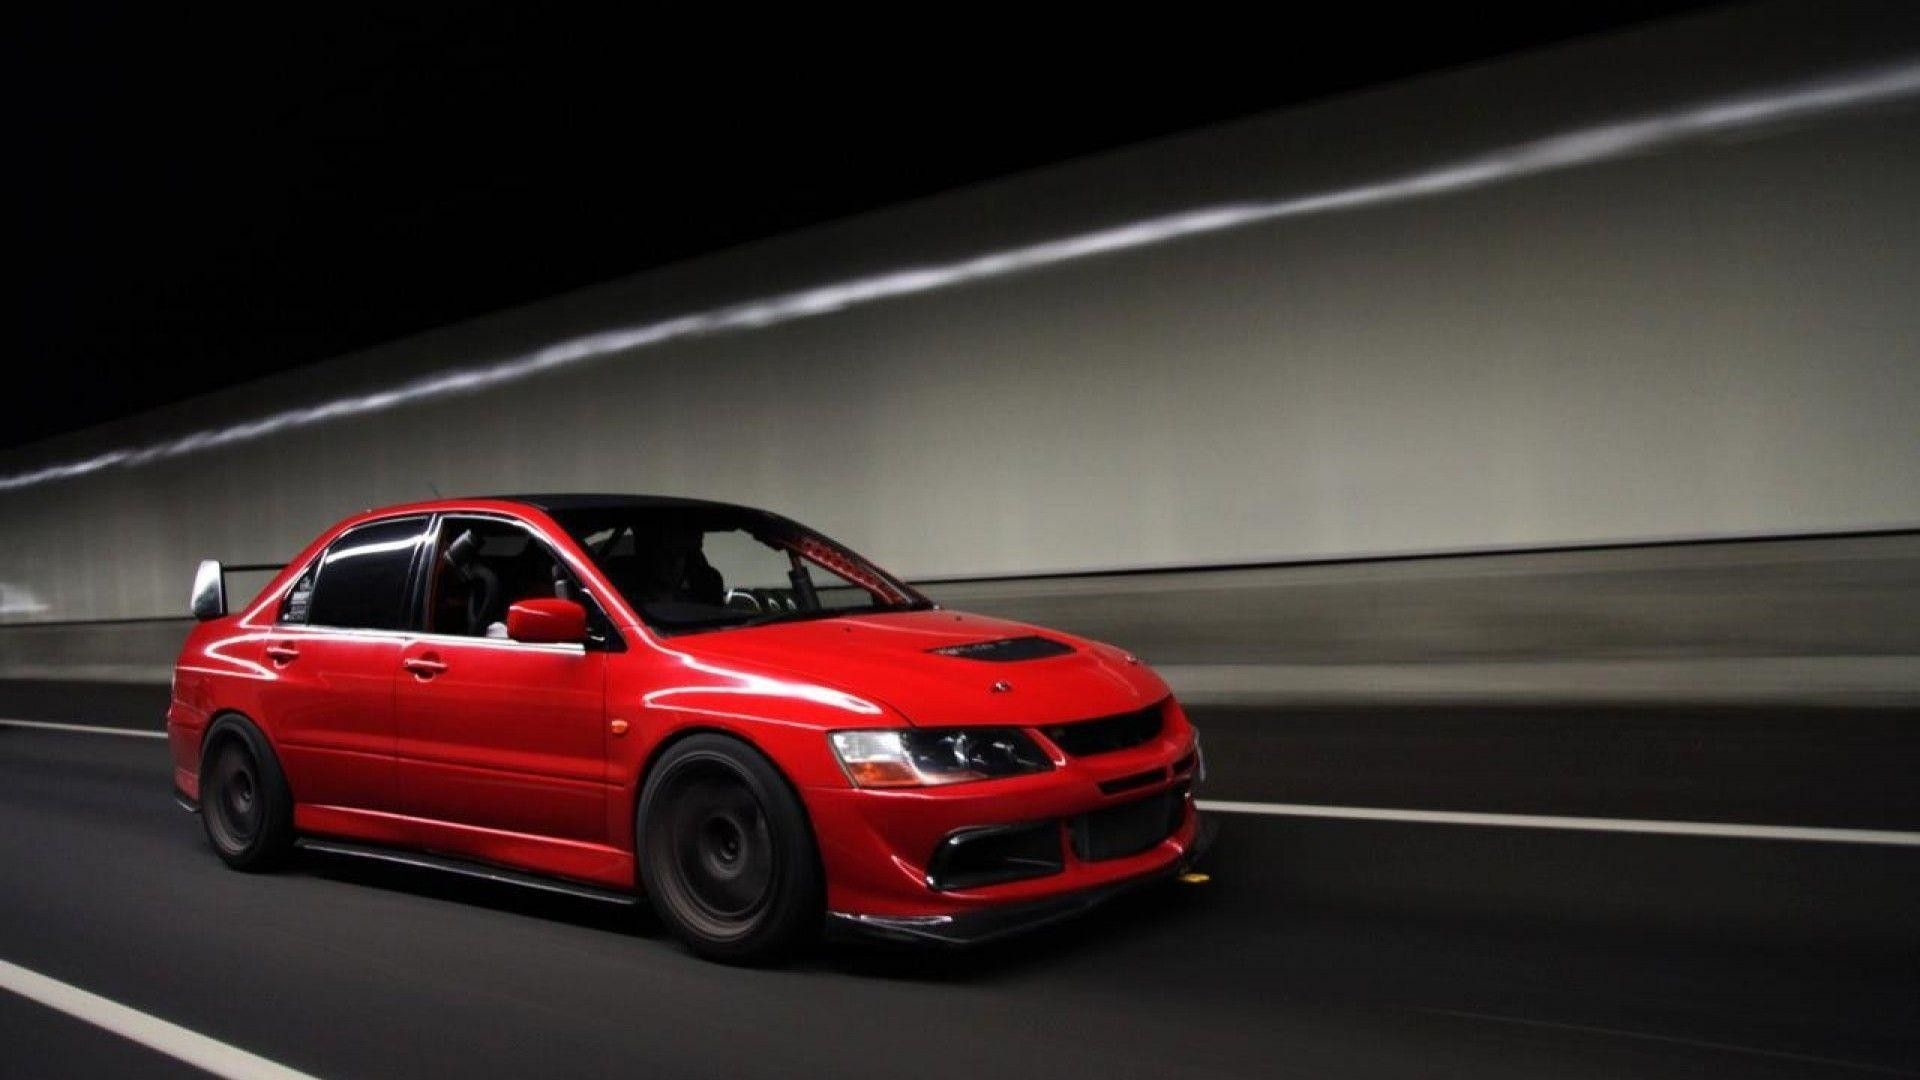 Evo 9 Wallpapers Top Free Evo 9 Backgrounds Wallpaperaccess